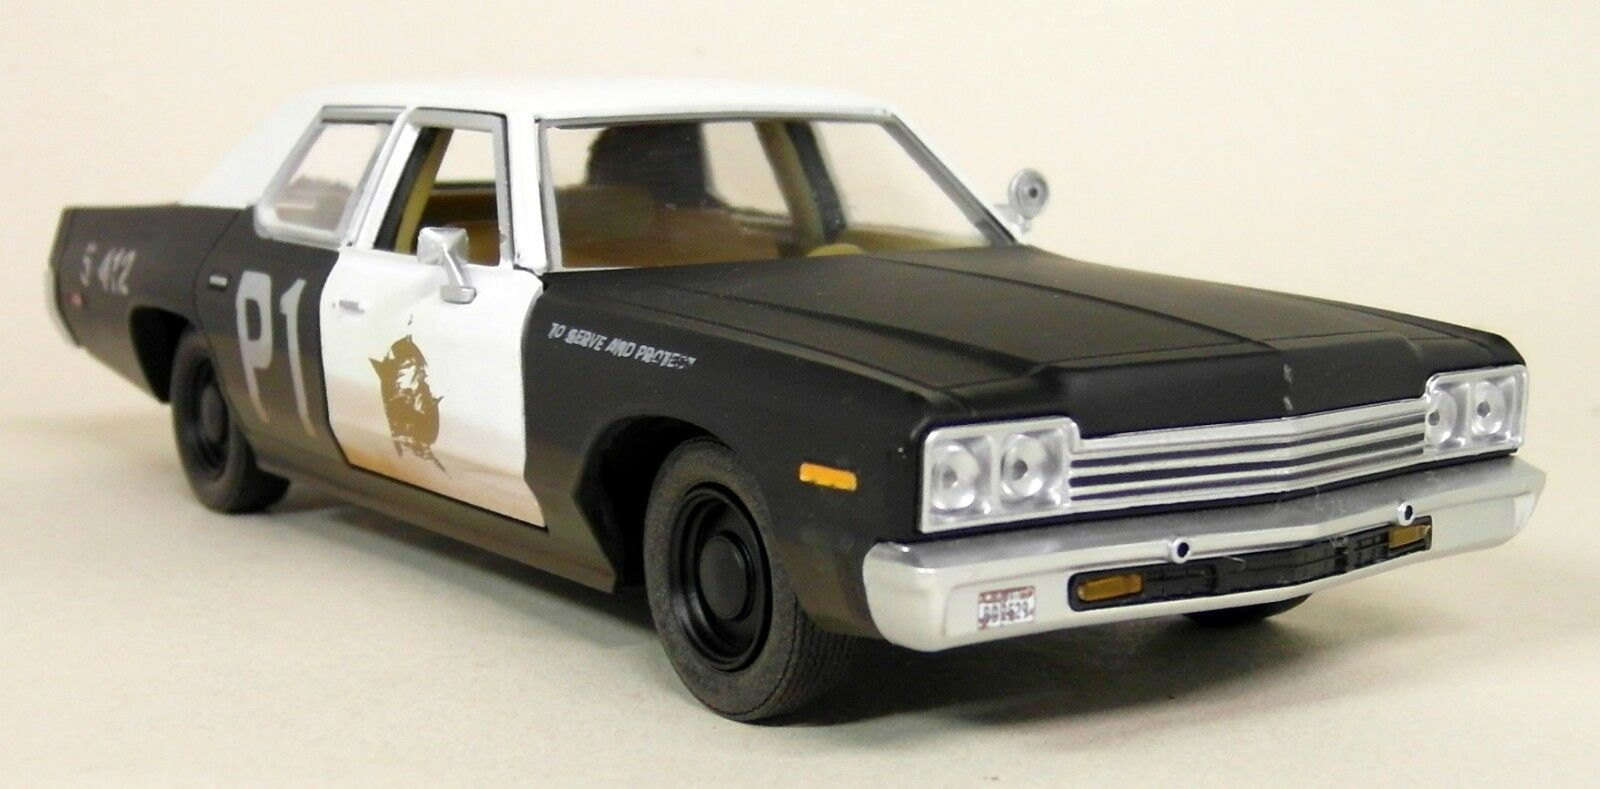 Greenlight 1 24 Scale 1974 Dodge Monaco blueesmobile bluees Bredher Bredher Bredher Diecast Model 378036